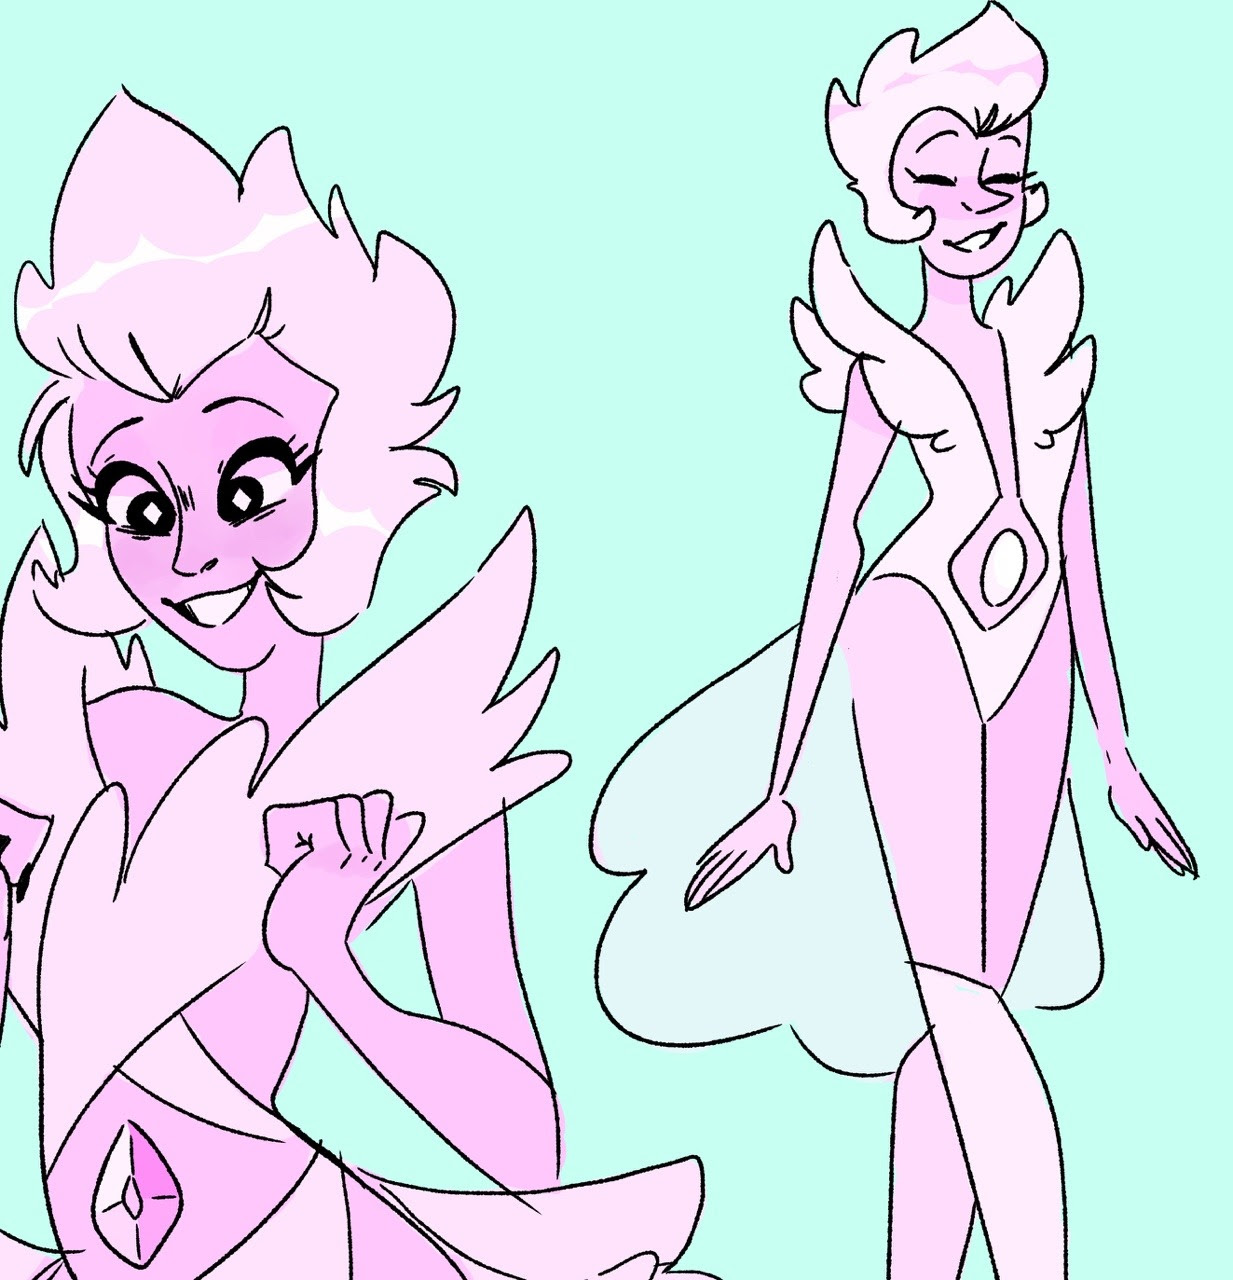 idk just some pink d and pink porl ideas